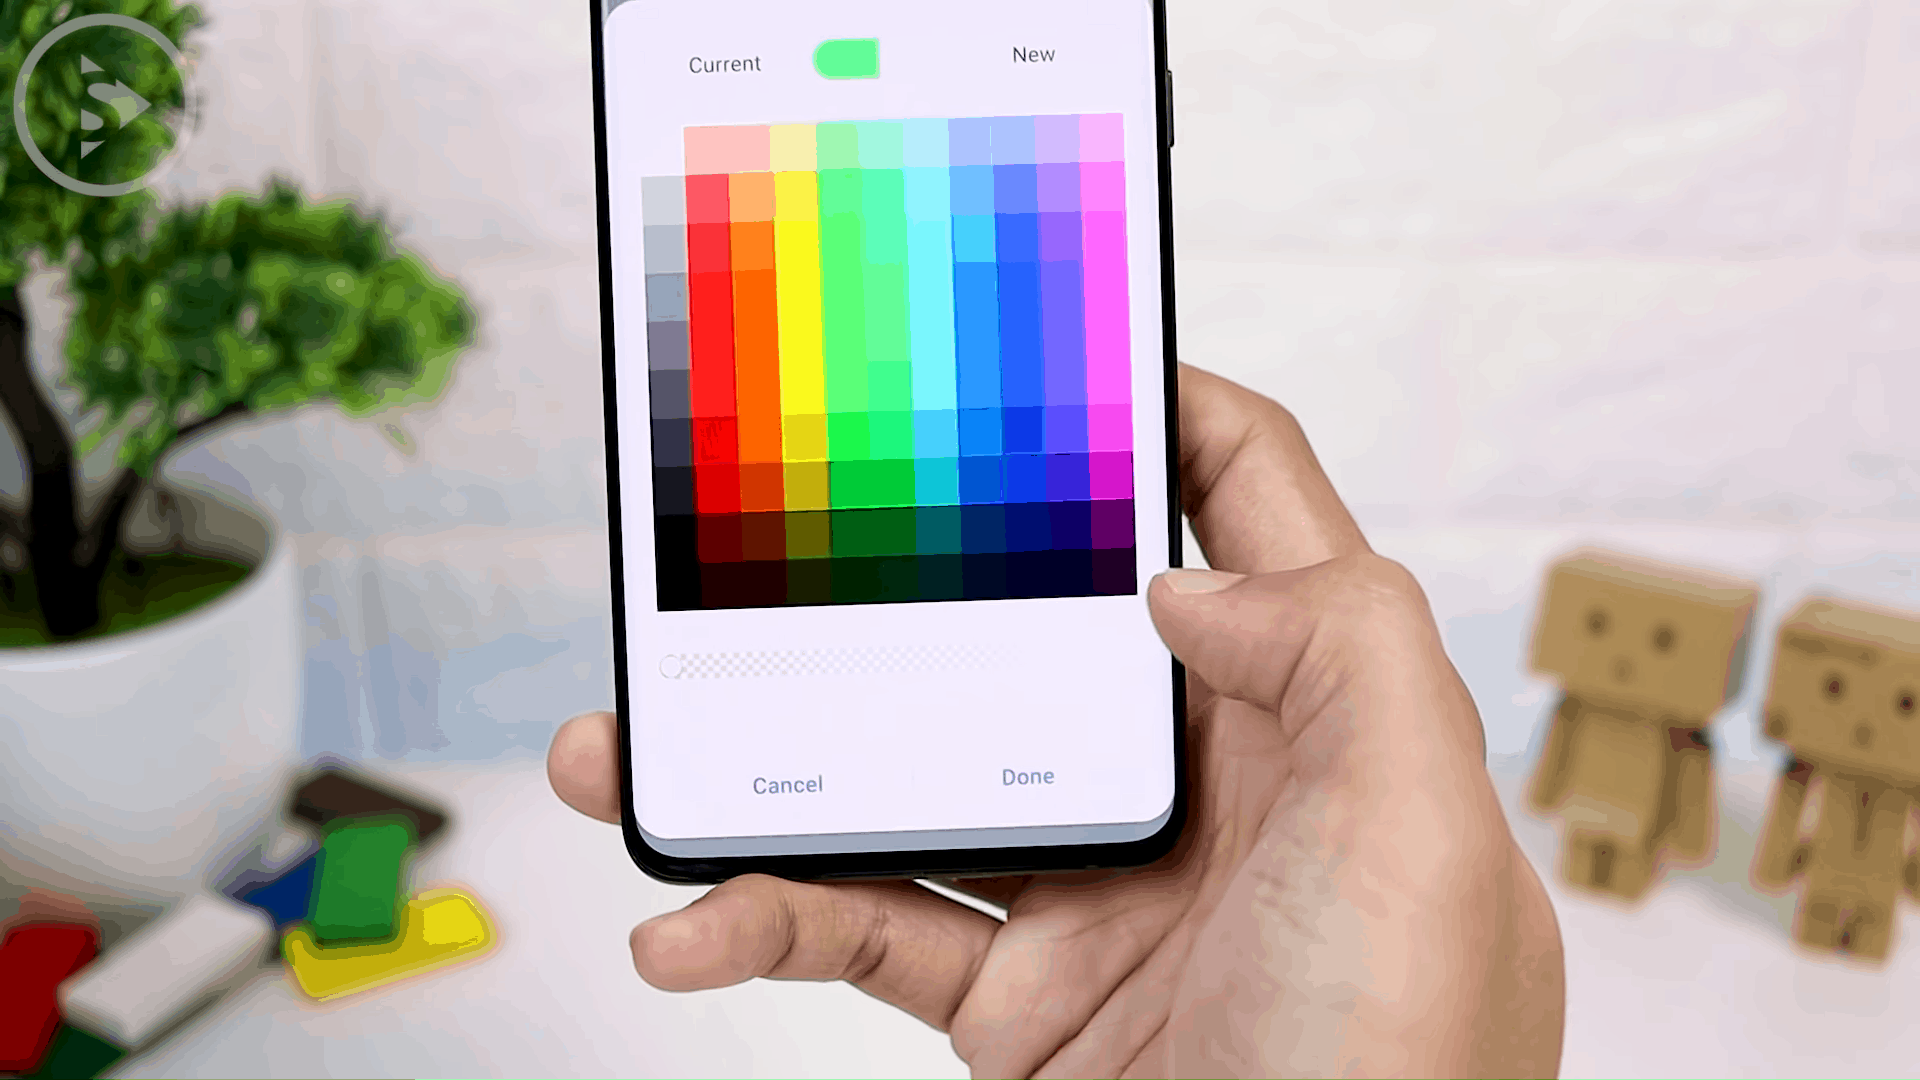 How to Remove or Change Handle Display Color in One Hand Operation+